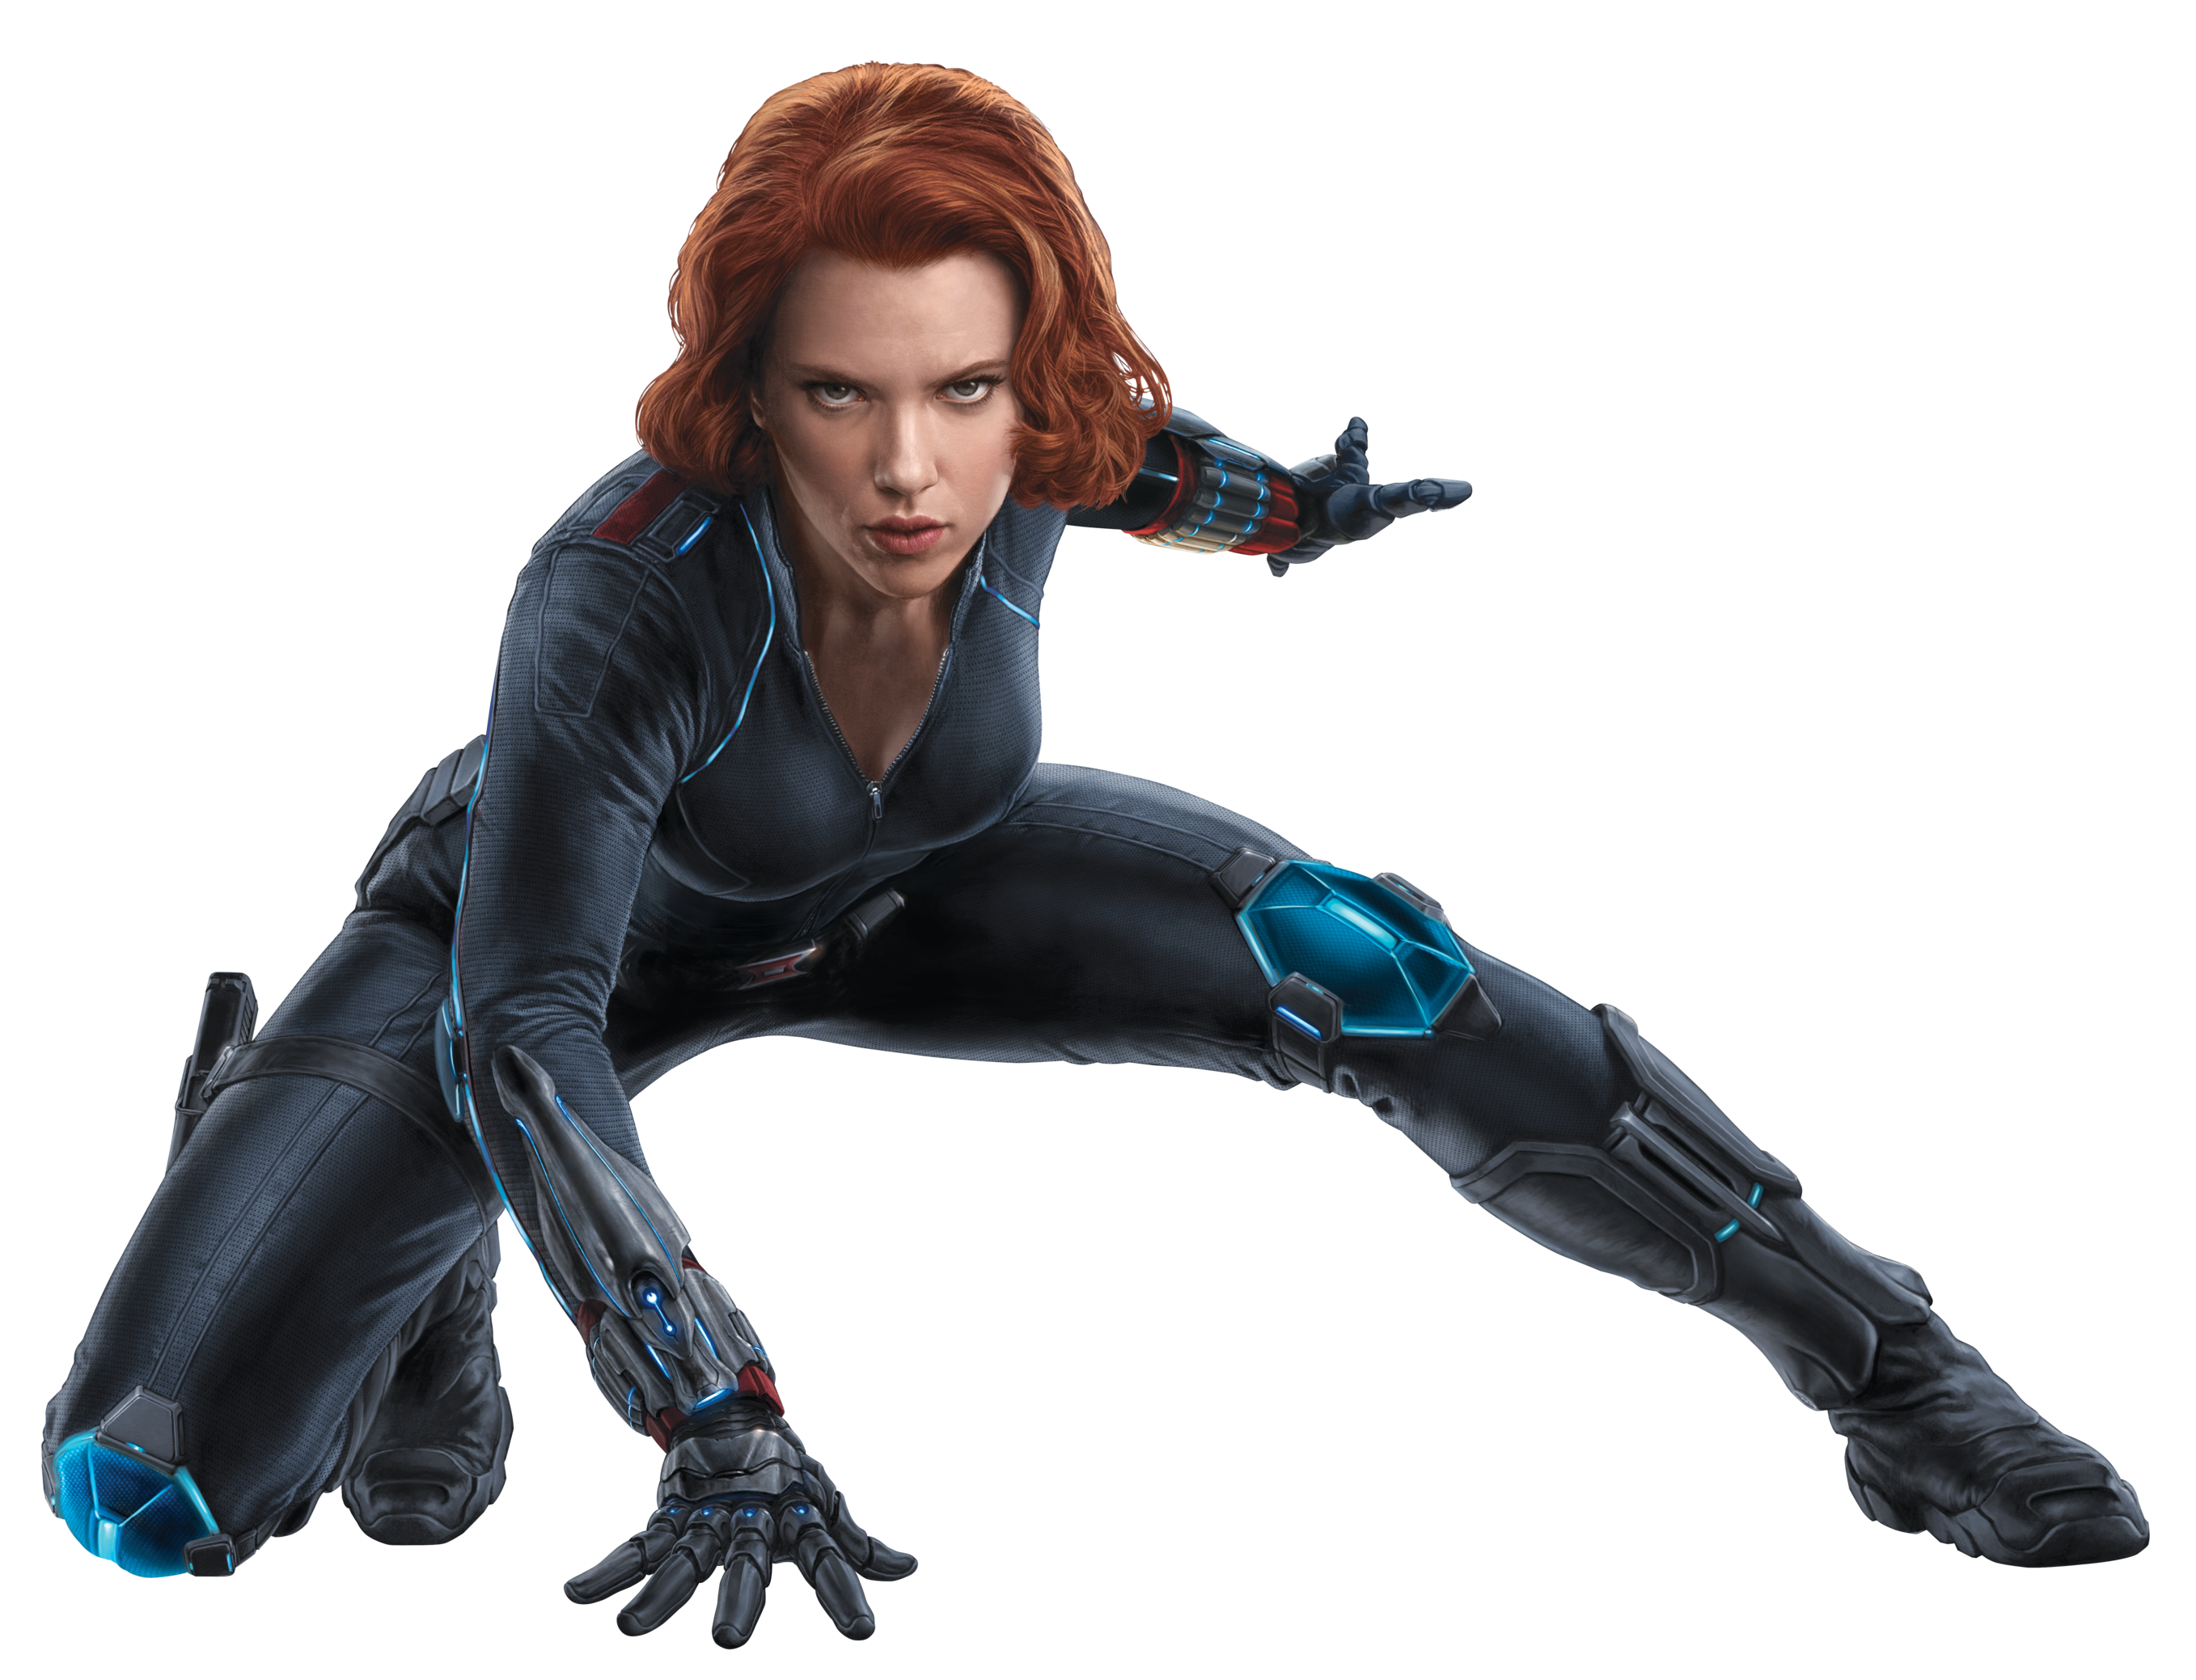 black widow confirmed for marvel standalone film film. Black Bedroom Furniture Sets. Home Design Ideas